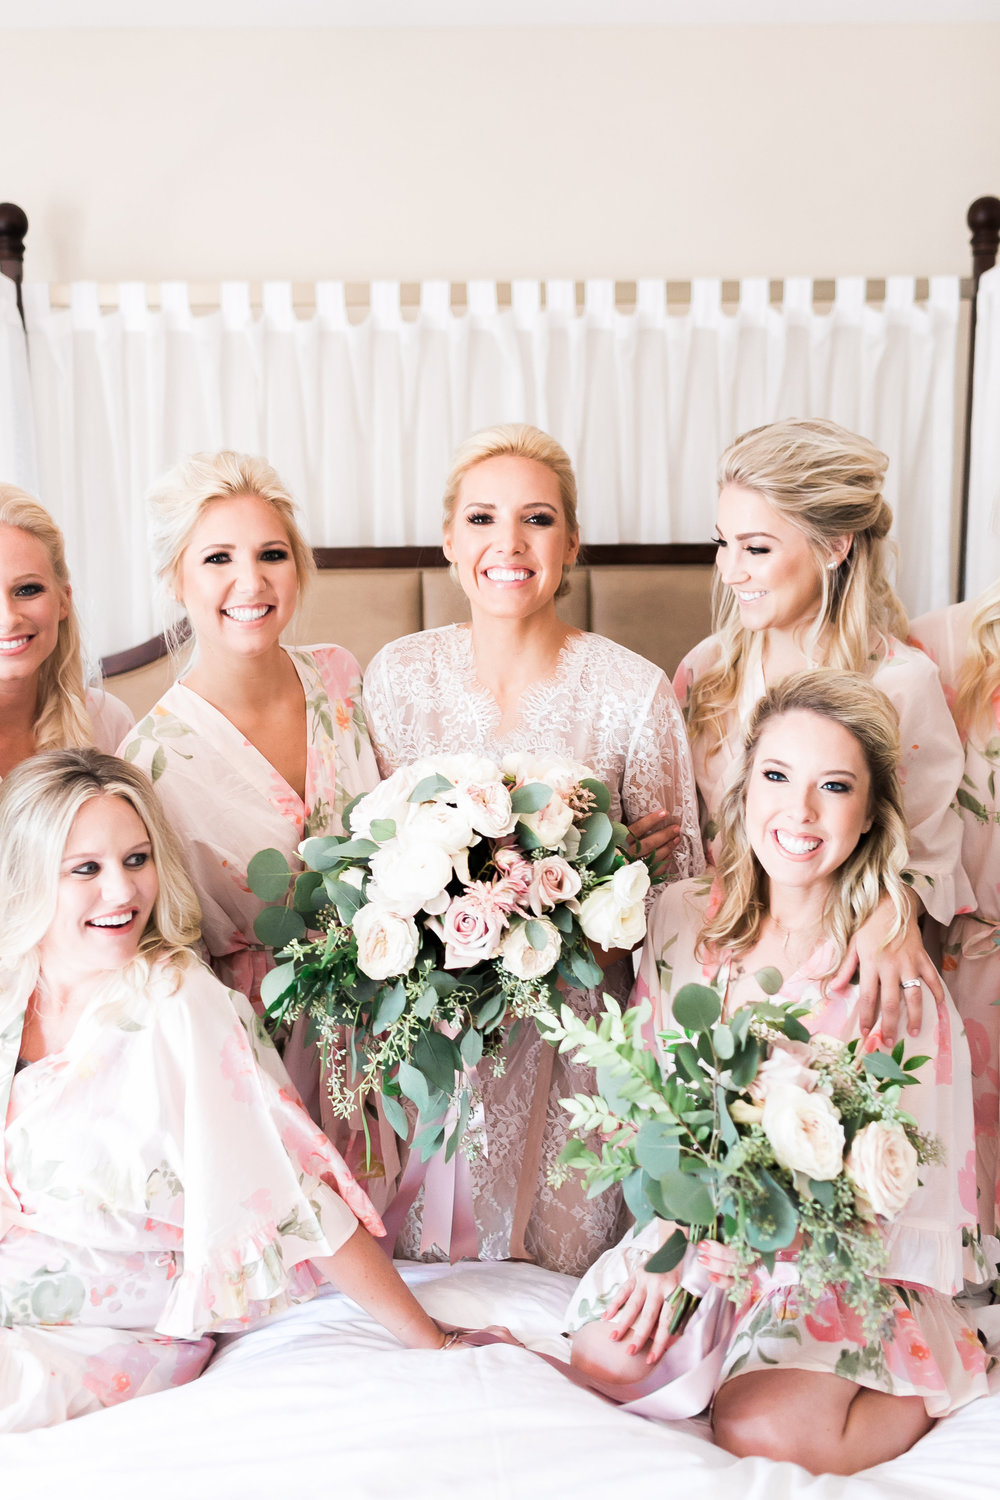 Bride and bridesmaids in prink robes.    CREDITS:  Destination Wedding Planner  ANDREA EPPOLITO EVENTS   ·  Images by  J.ANNE P  HOTOGRAPHY   ·  Video  HOO FILMS   ·  Venue Ritz Carlton Bacara Santa Barbara  · Gown  MONIQUE LHULLIER  · Bridesmaids Dresses  SHOW ME YOUR MUMU  · Stationery  SHE PAPERIE  · Bride's Shoes  BADGLEY MISCHKA  · Hair and Makeup  TEAM HAIR AND MAKEUP  · Floral  BLUE MAGNOLIA  · Linen  LA TAVOLA  · Decor Rentals  TENT MERCHANT  · Calligraphy  EBB  ·Lighting  FIVE STAR AV  · Ice Cream Station  MCCONNELL'S ICE CREAM